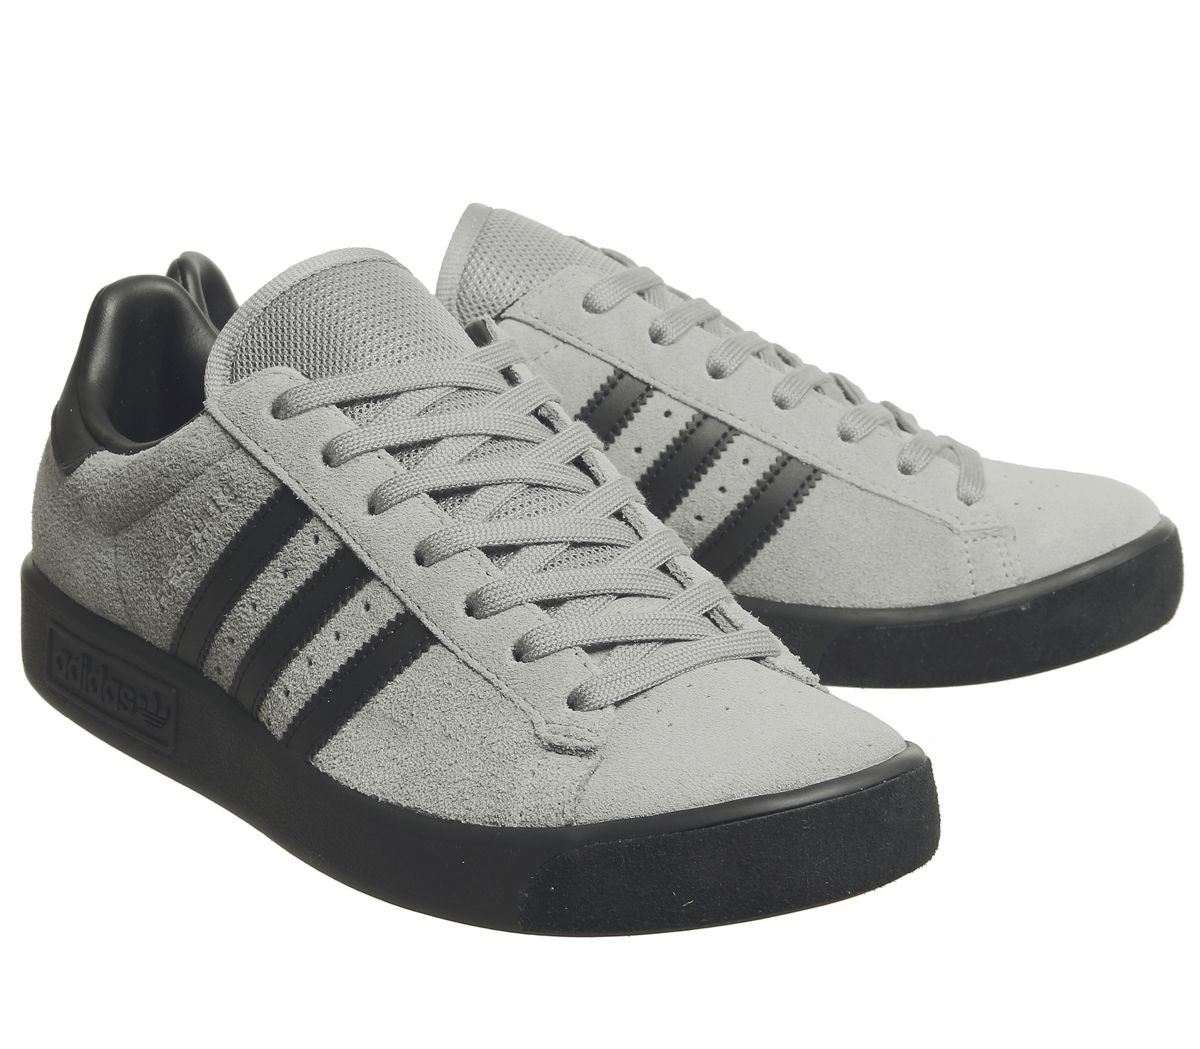 Adidas men's shoes | Dublin | Gumtree Classifieds Ireland | 640781543